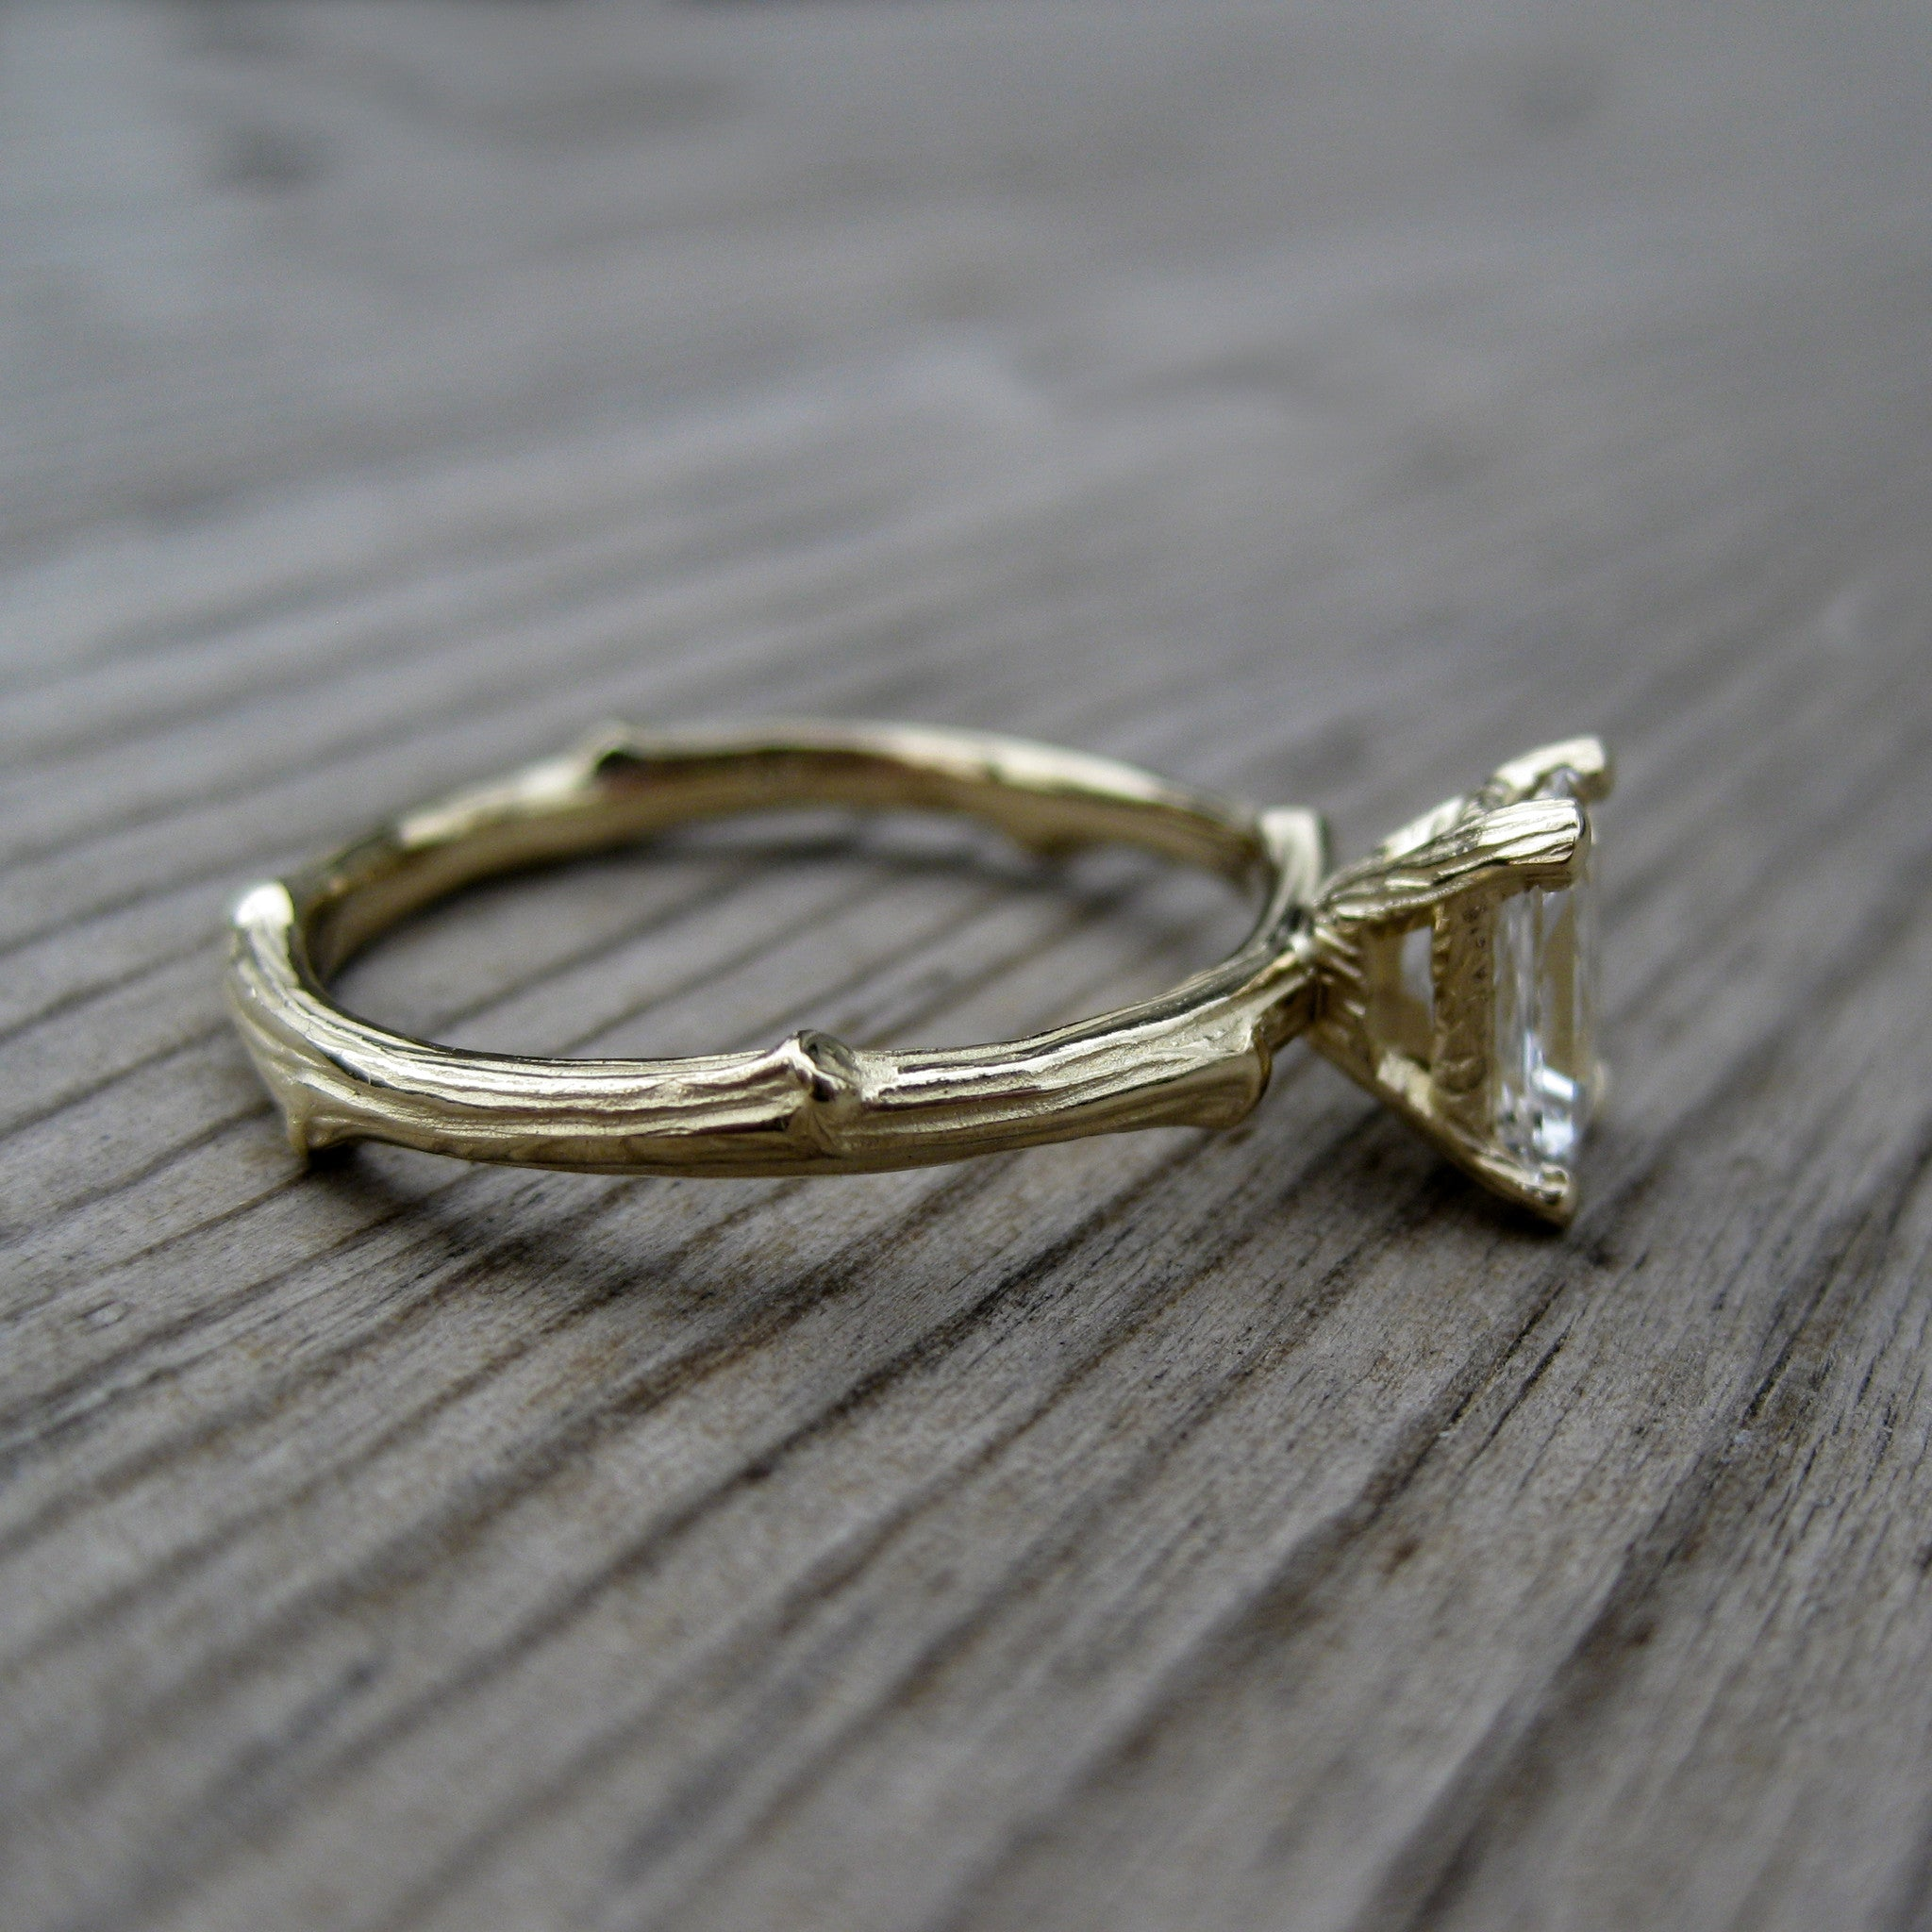 twig vintage pear gold in moissanite inspirational engagement rings wedding yellow or ring ideas white etsy via